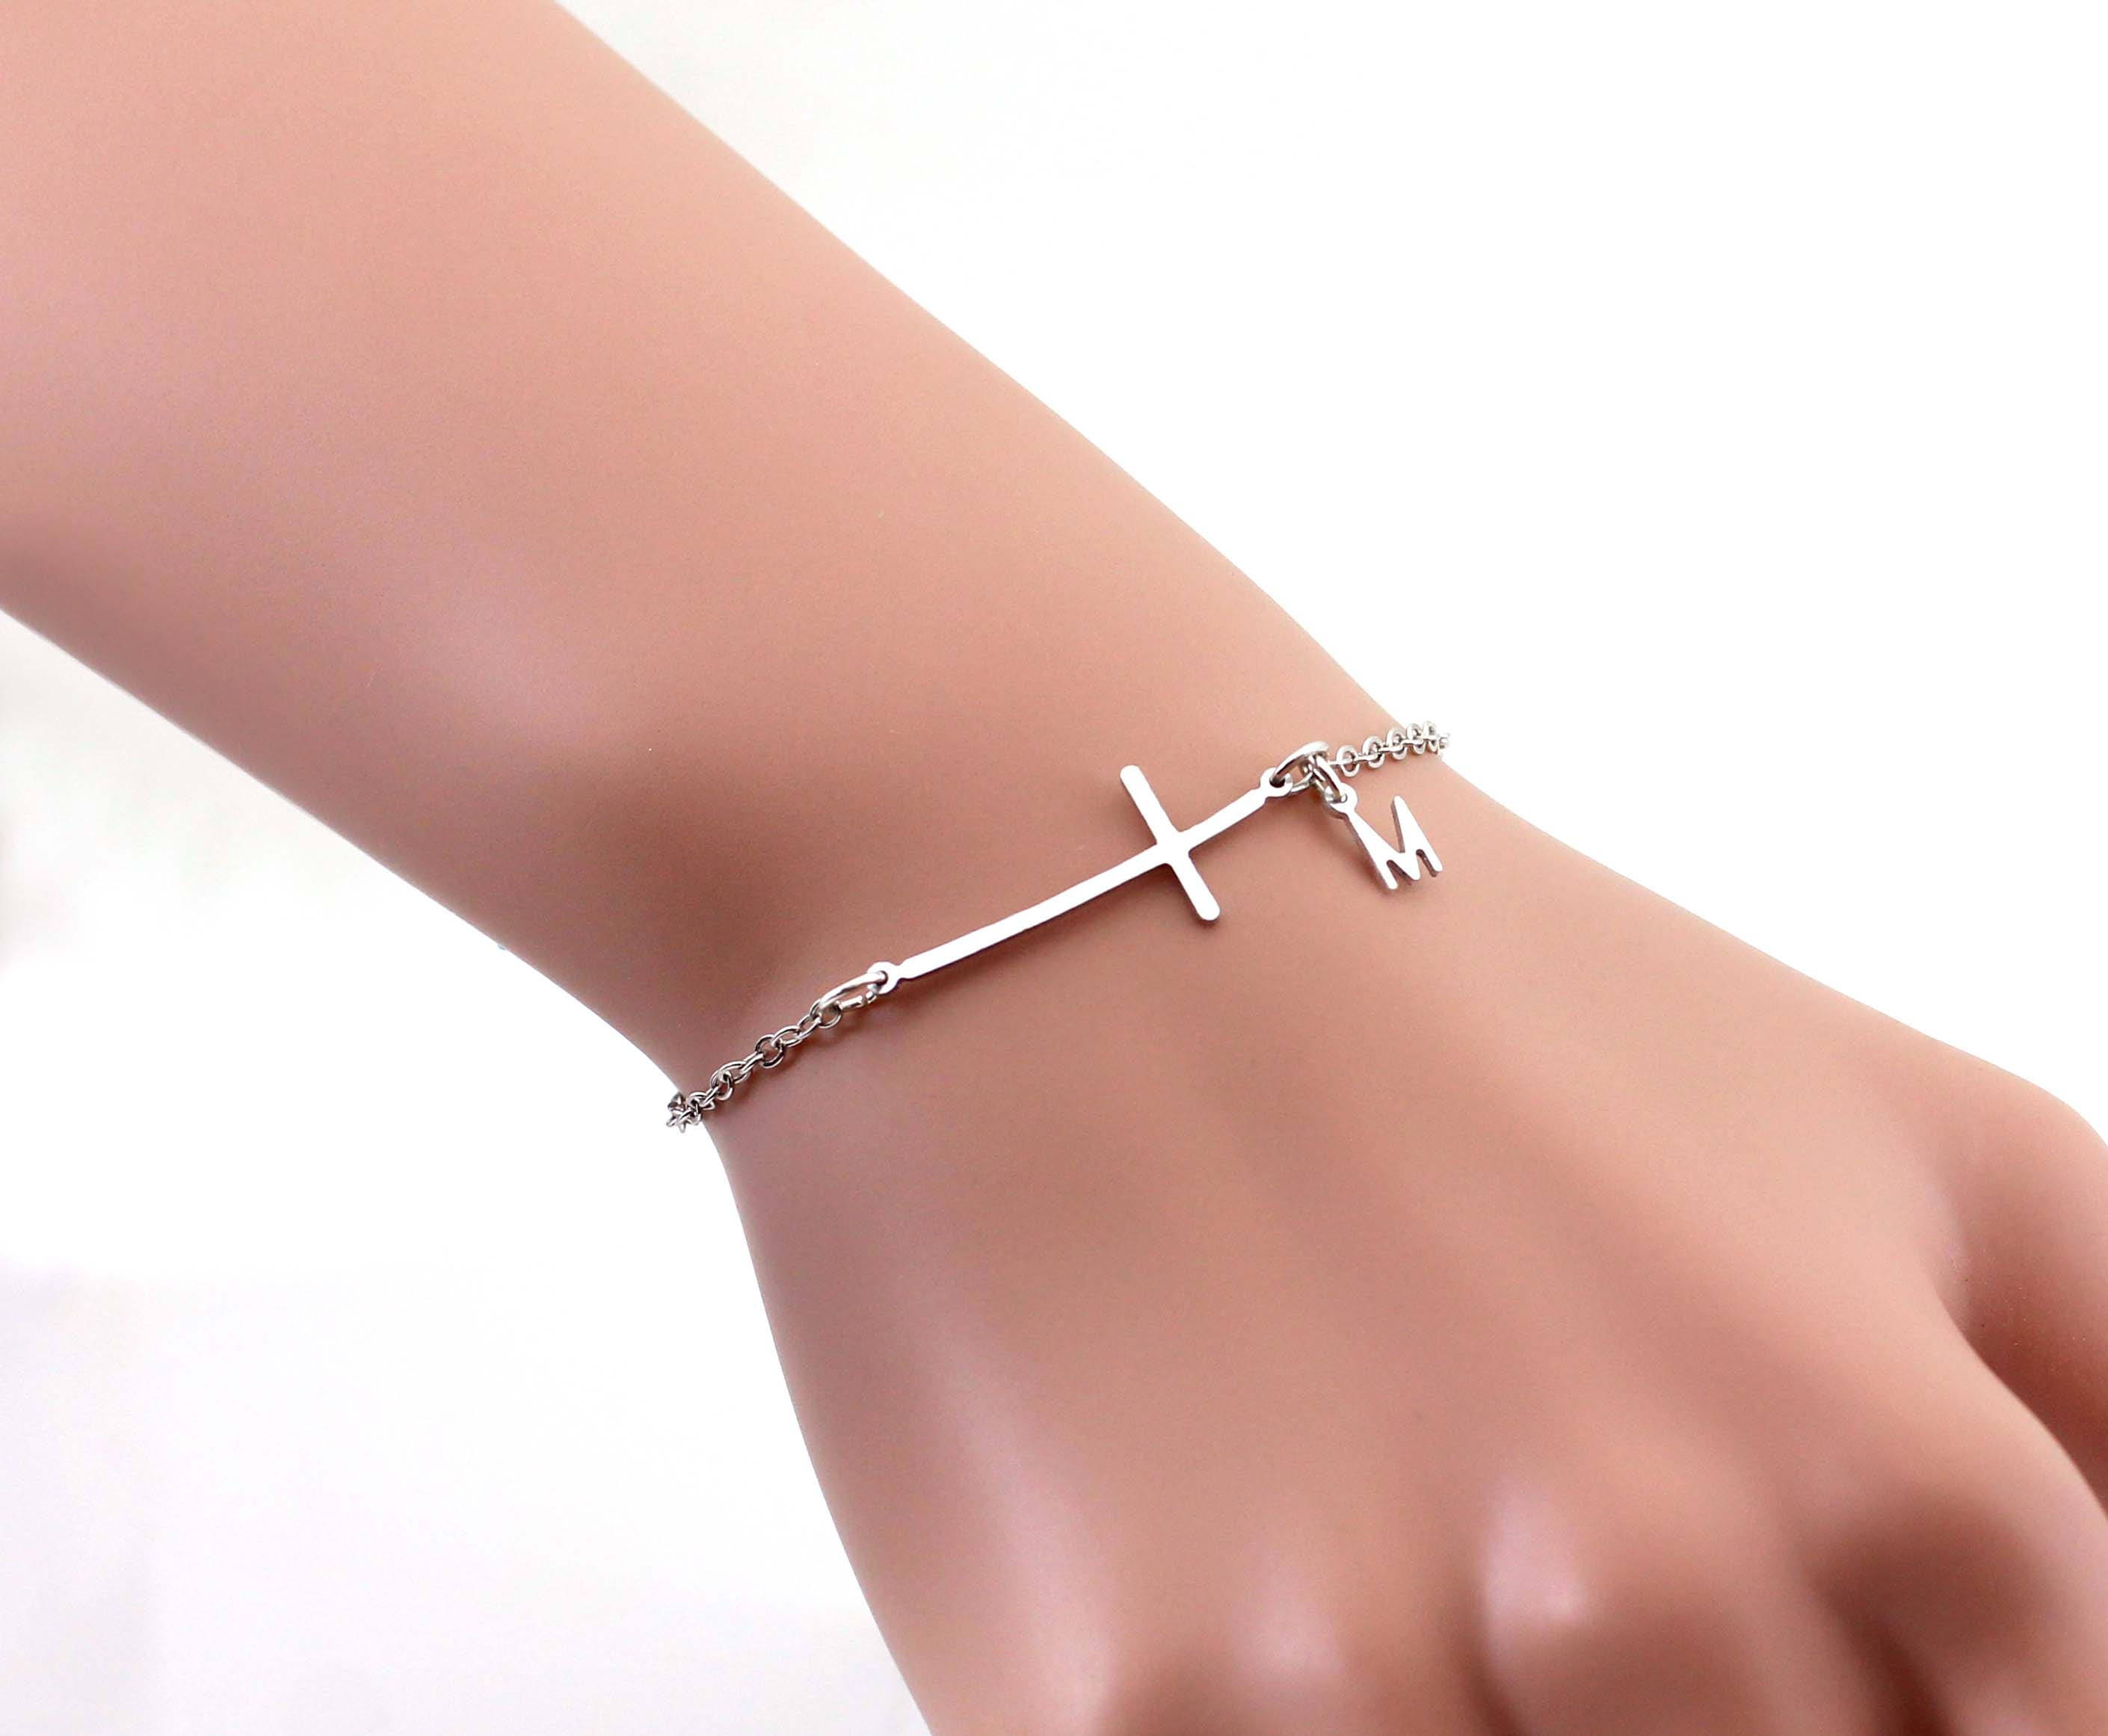 cross necklace products freshchristian horizontal bracelet goldhorizontal